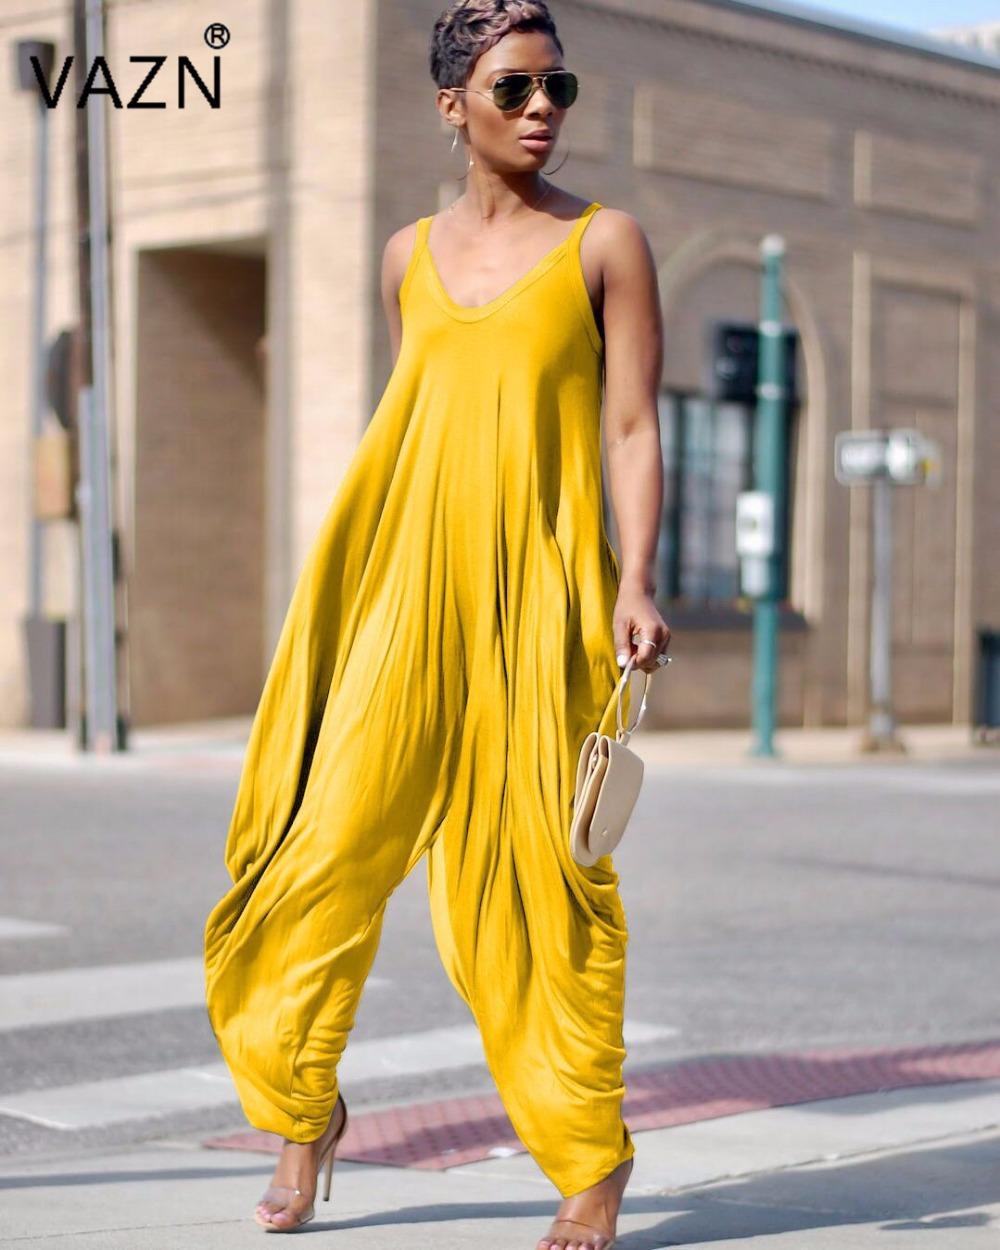 VAZN 2018 solid yellow spaghetti strap jumpsuits women sleeveless loose jumpsuits ladies hollow out full length jumpsuits LD8097